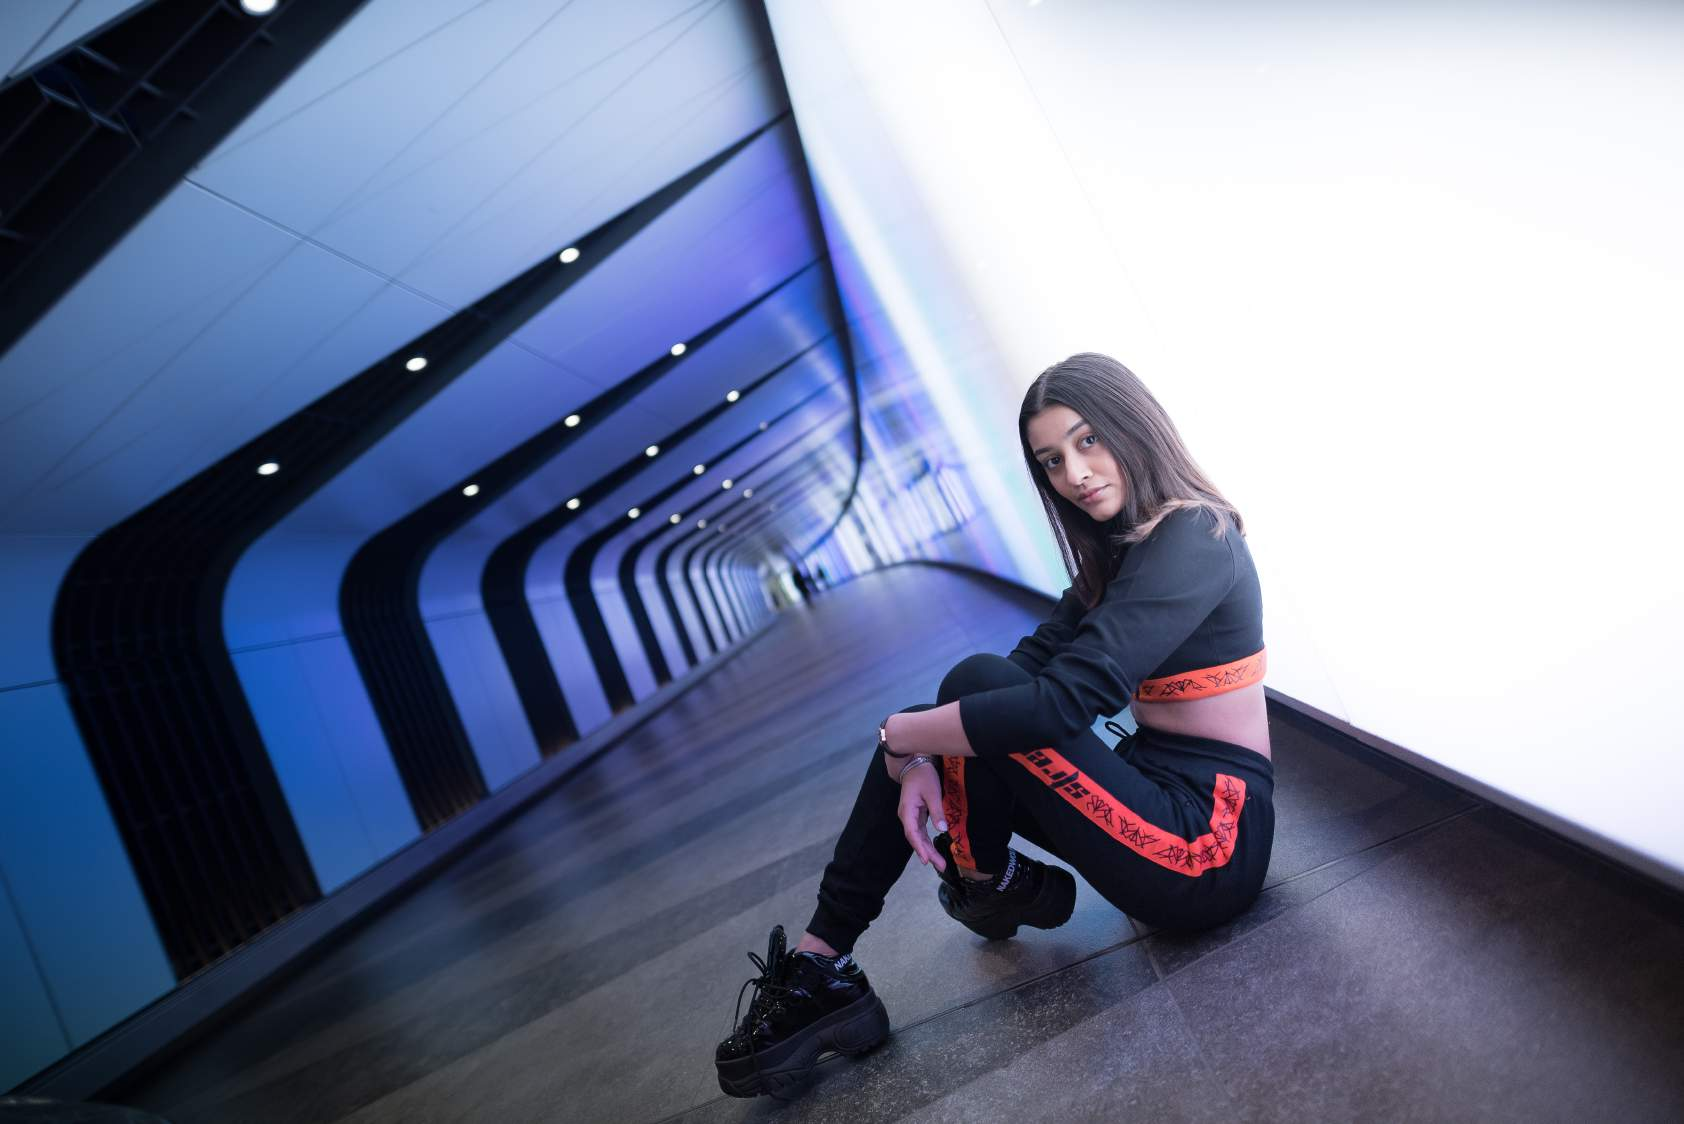 A girl wearing black and orange track pants with orange strips on the side of the track pant and Black colored crop top with orange band at the bottom with a zip in the front and high boots. Sitting in a subway.